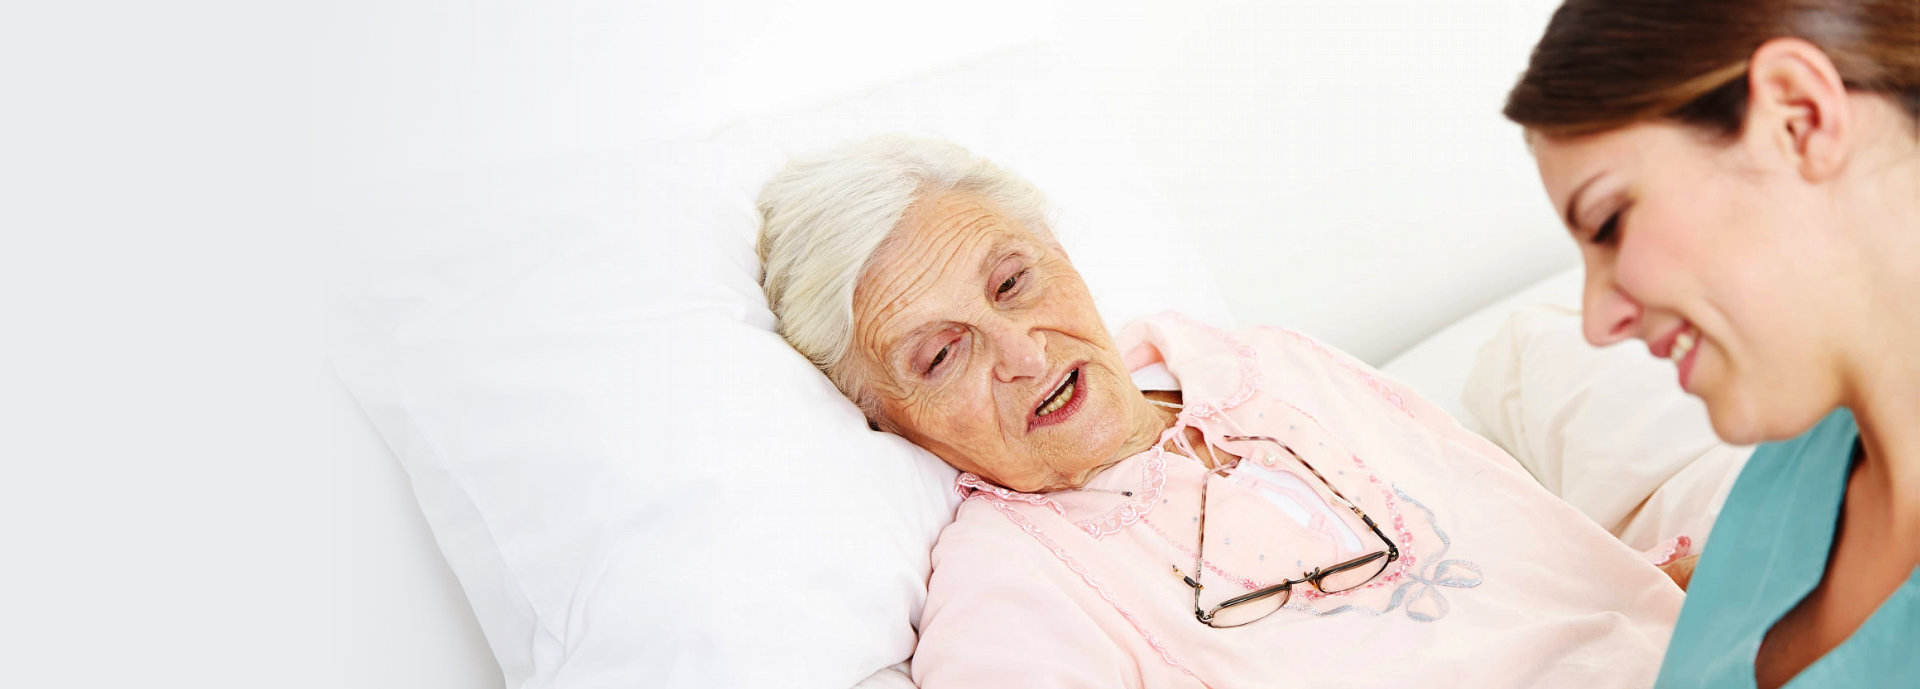 happy senior woman on bed with caregiver beside her